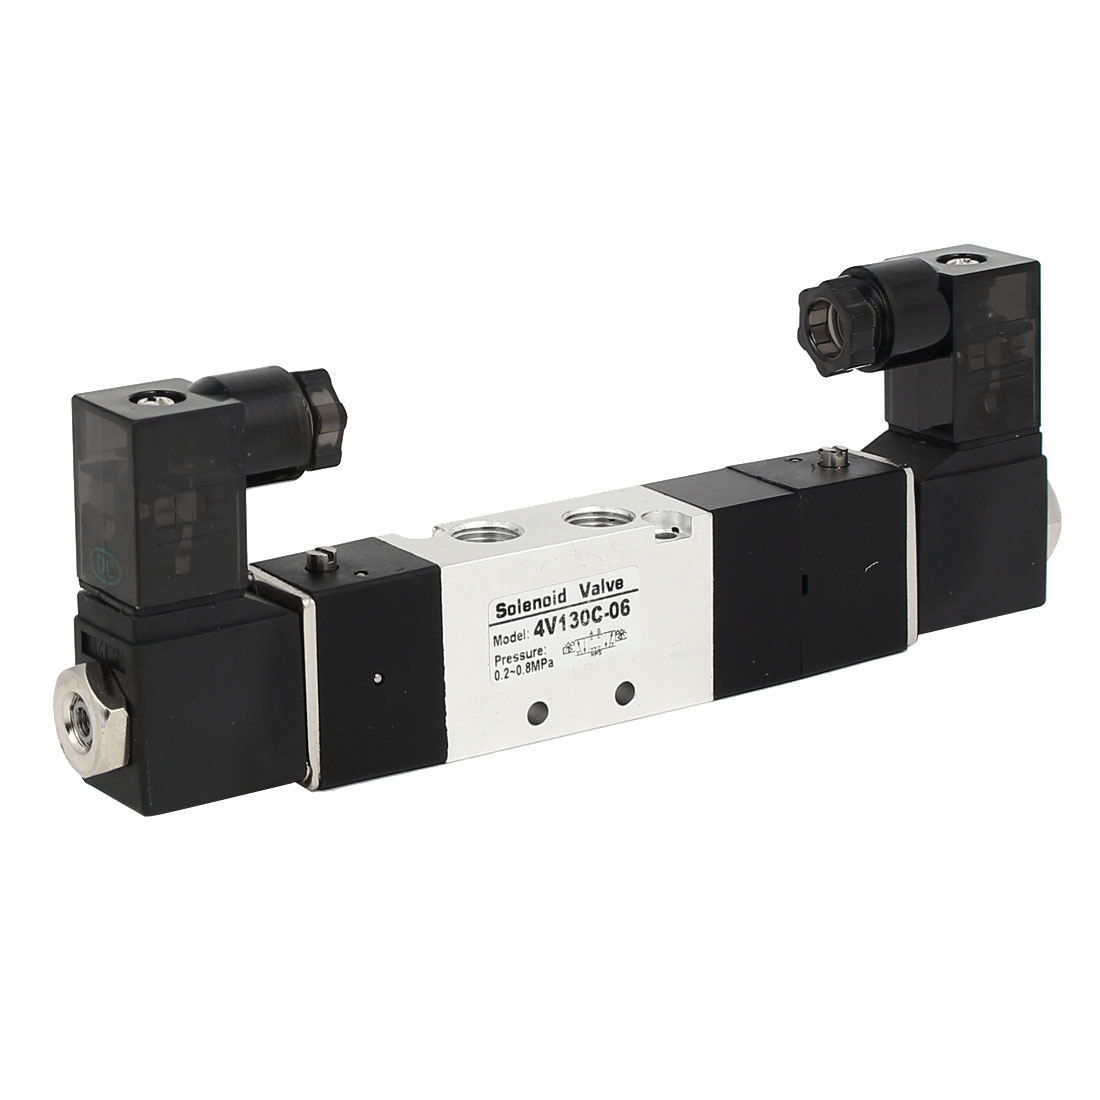 DC 12V 3 Position 5 Way Neutral Pneumatic Air Control Solenoid Valve 4V130C-06